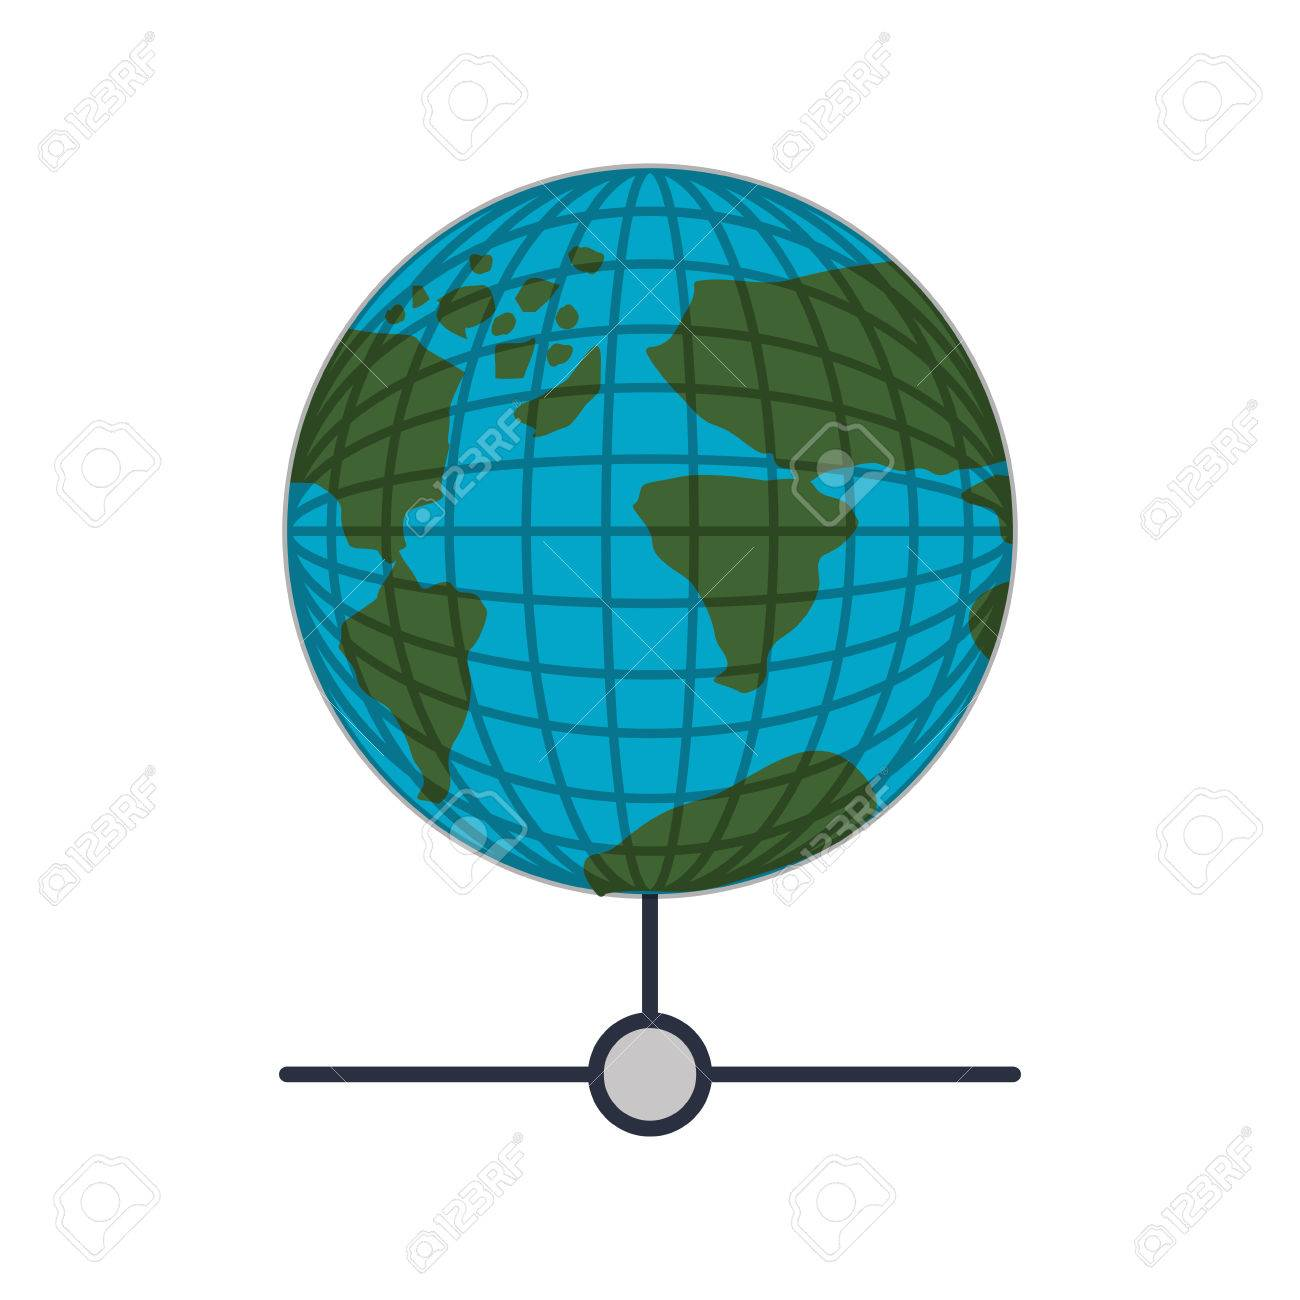 Earth world map with continents vector illustration royalty free earth world map with continents vector illustration stock vector 63910974 gumiabroncs Images